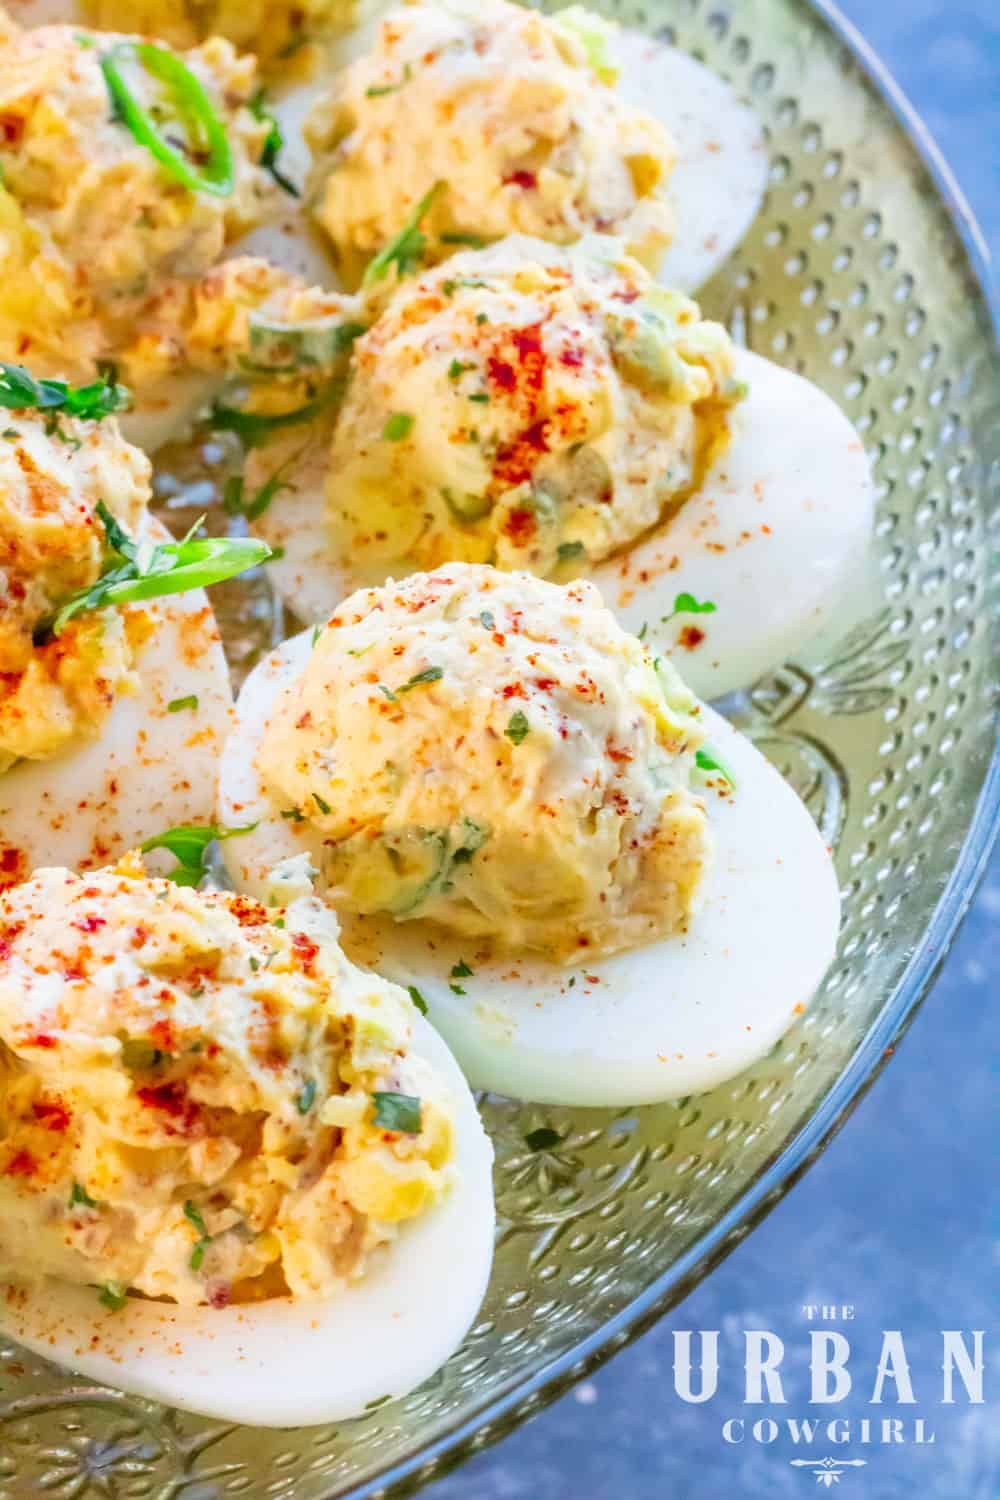 A long, large platter of cajun deviled eggs sprinkled with herbs.